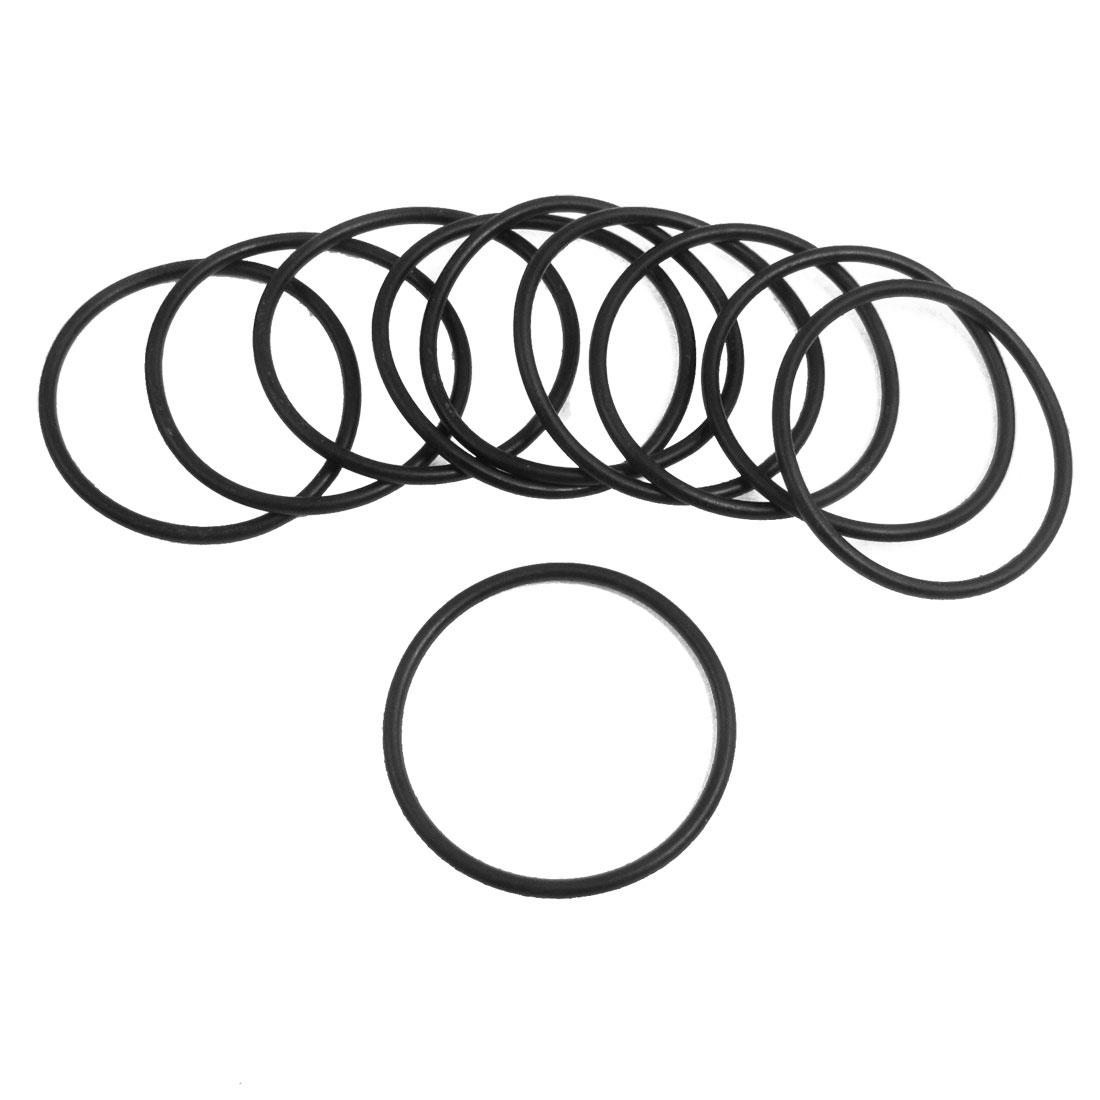 10 Pcs 44mm x 2.4mm Black Silicone O Rings Oil Seals Gaskets